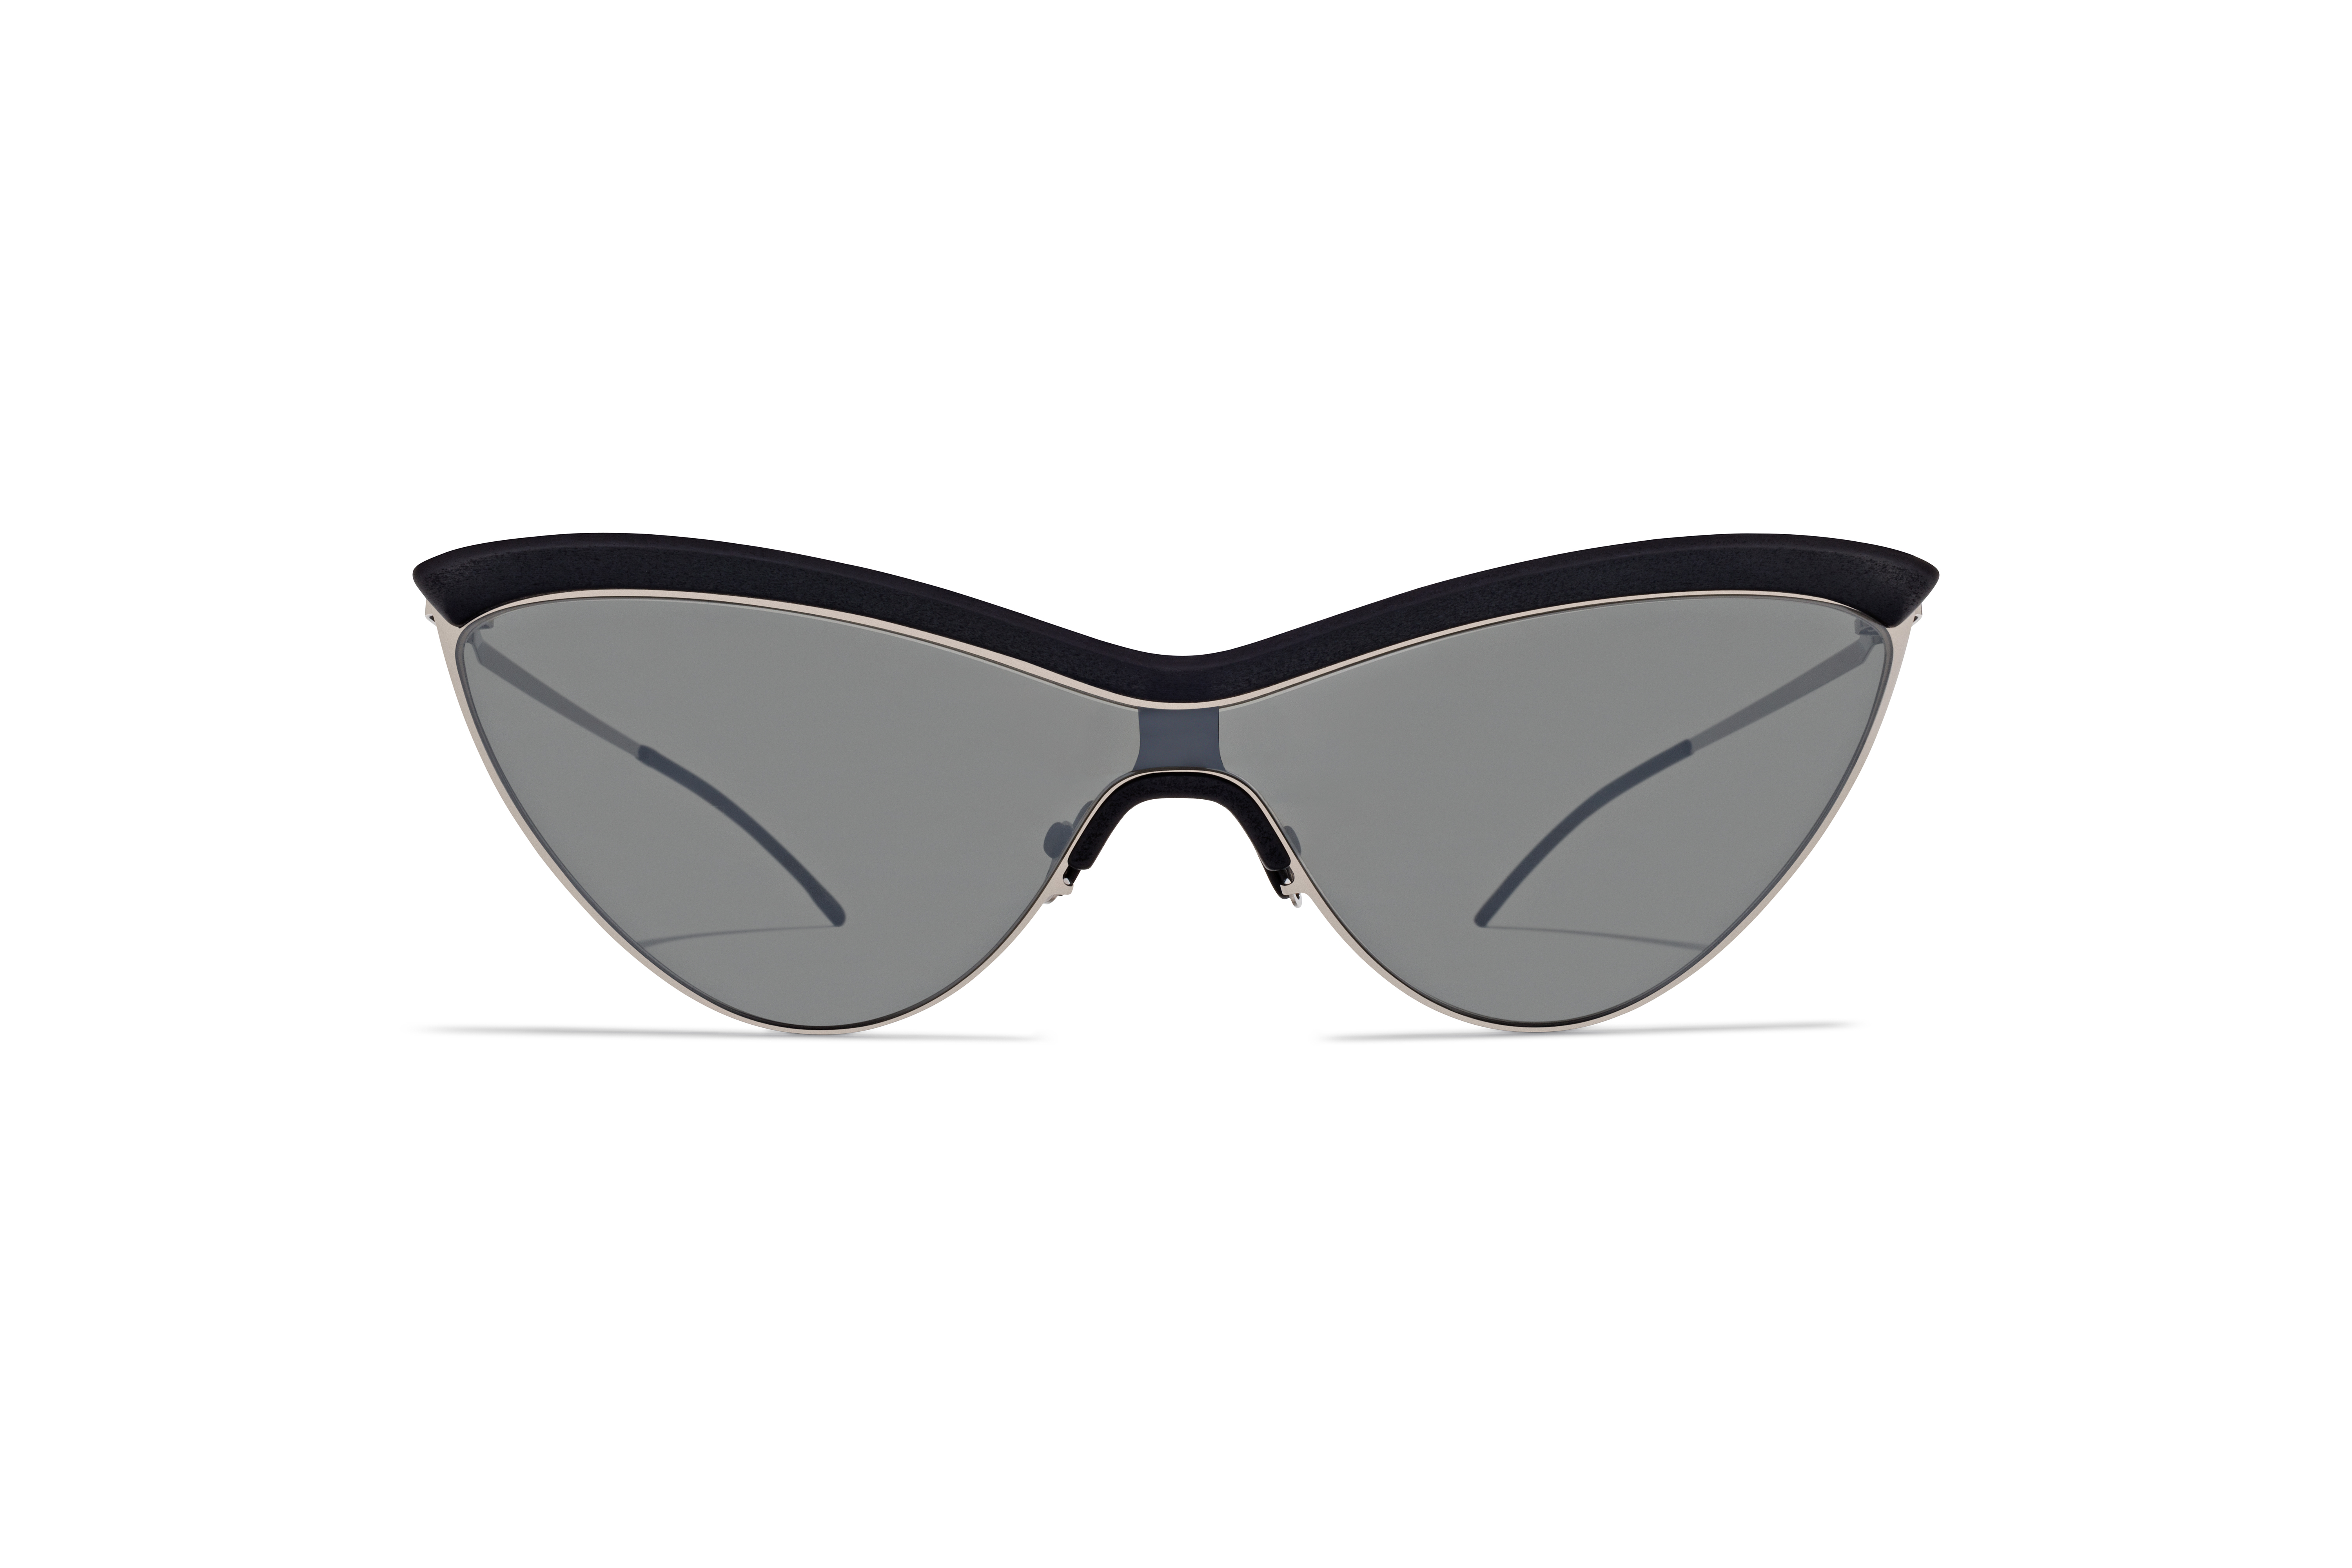 MYKITA Mm Sun Mmecho002 Mh22 Pitch Black Shinysilver Silver Flash Shield